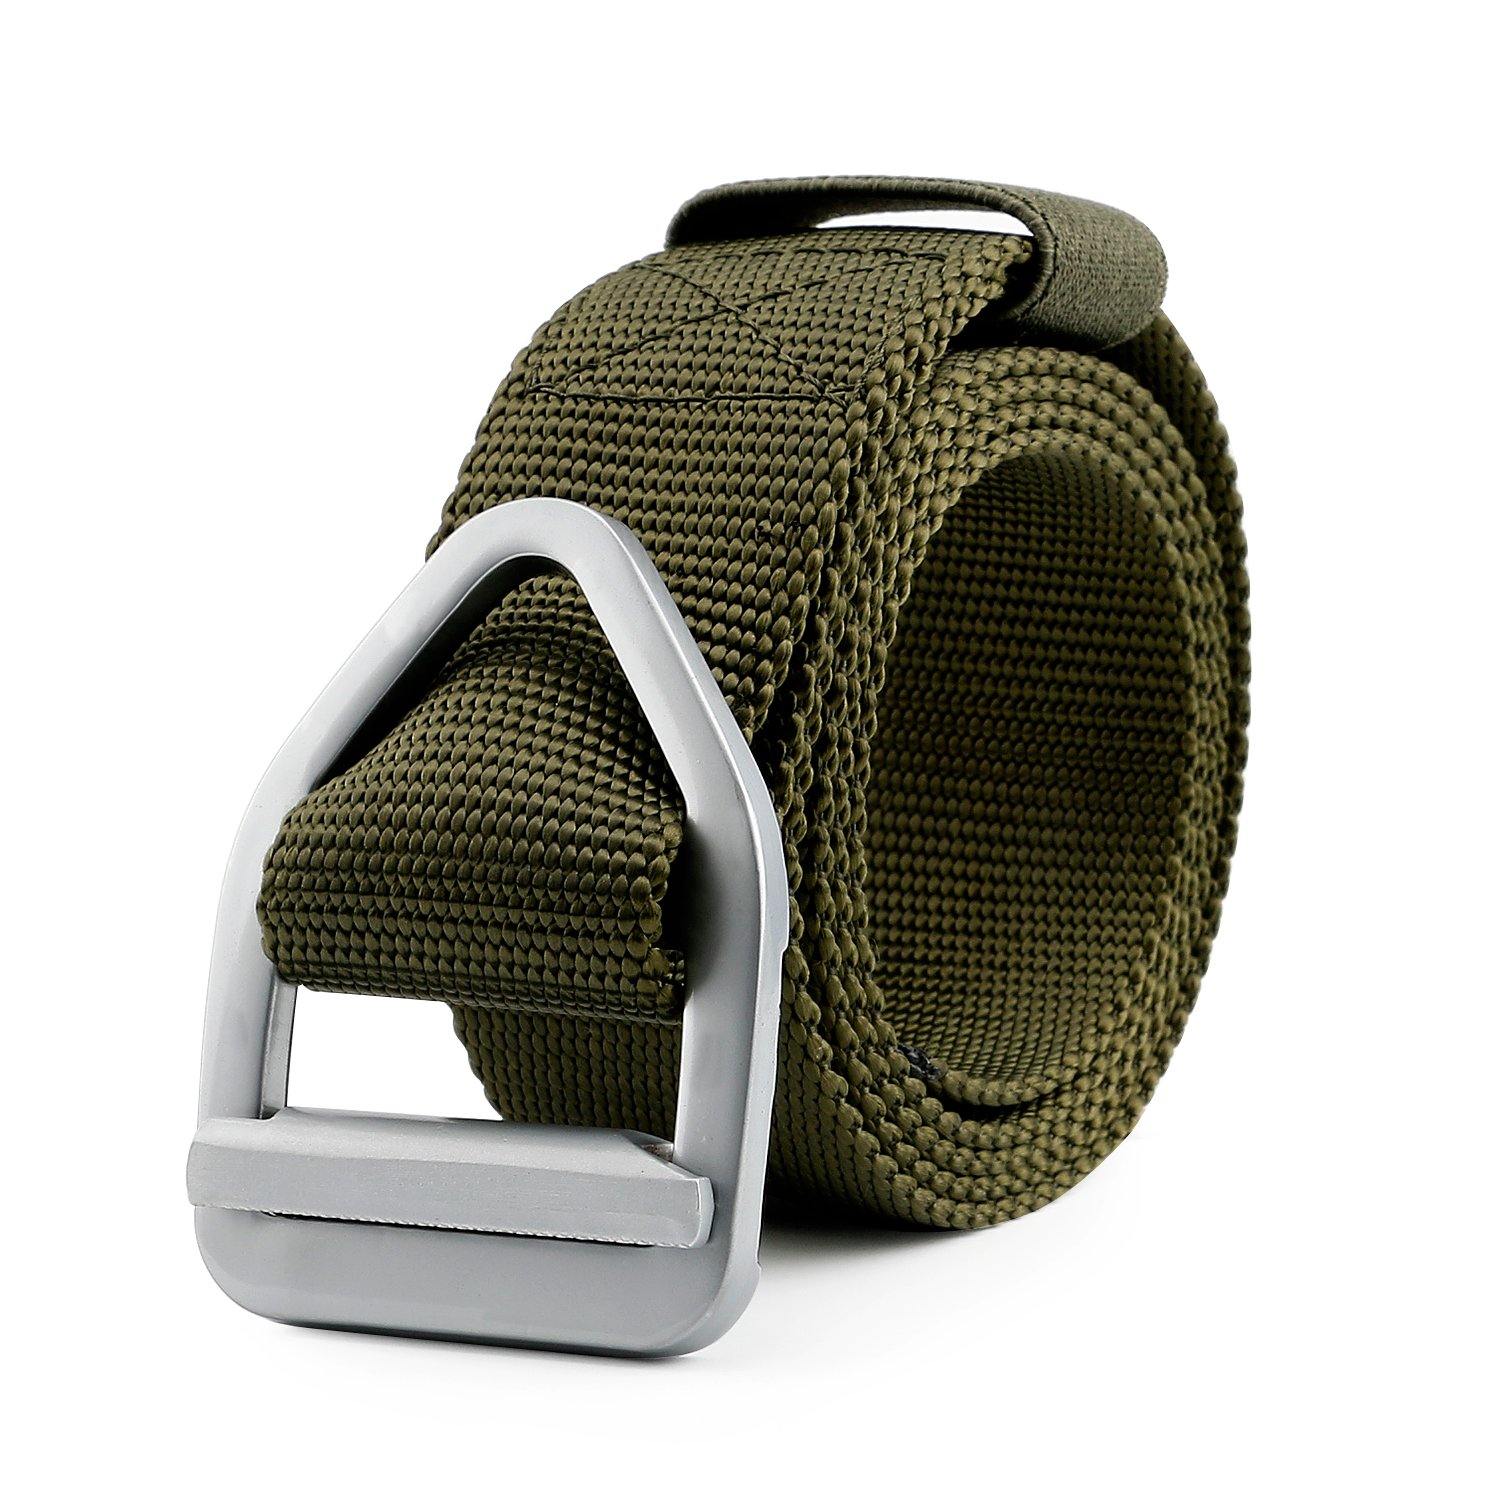 JASGOOD Men's Nylon Military Style Casual Army Outdoor Tactical Webbing Buckle Belt JA001